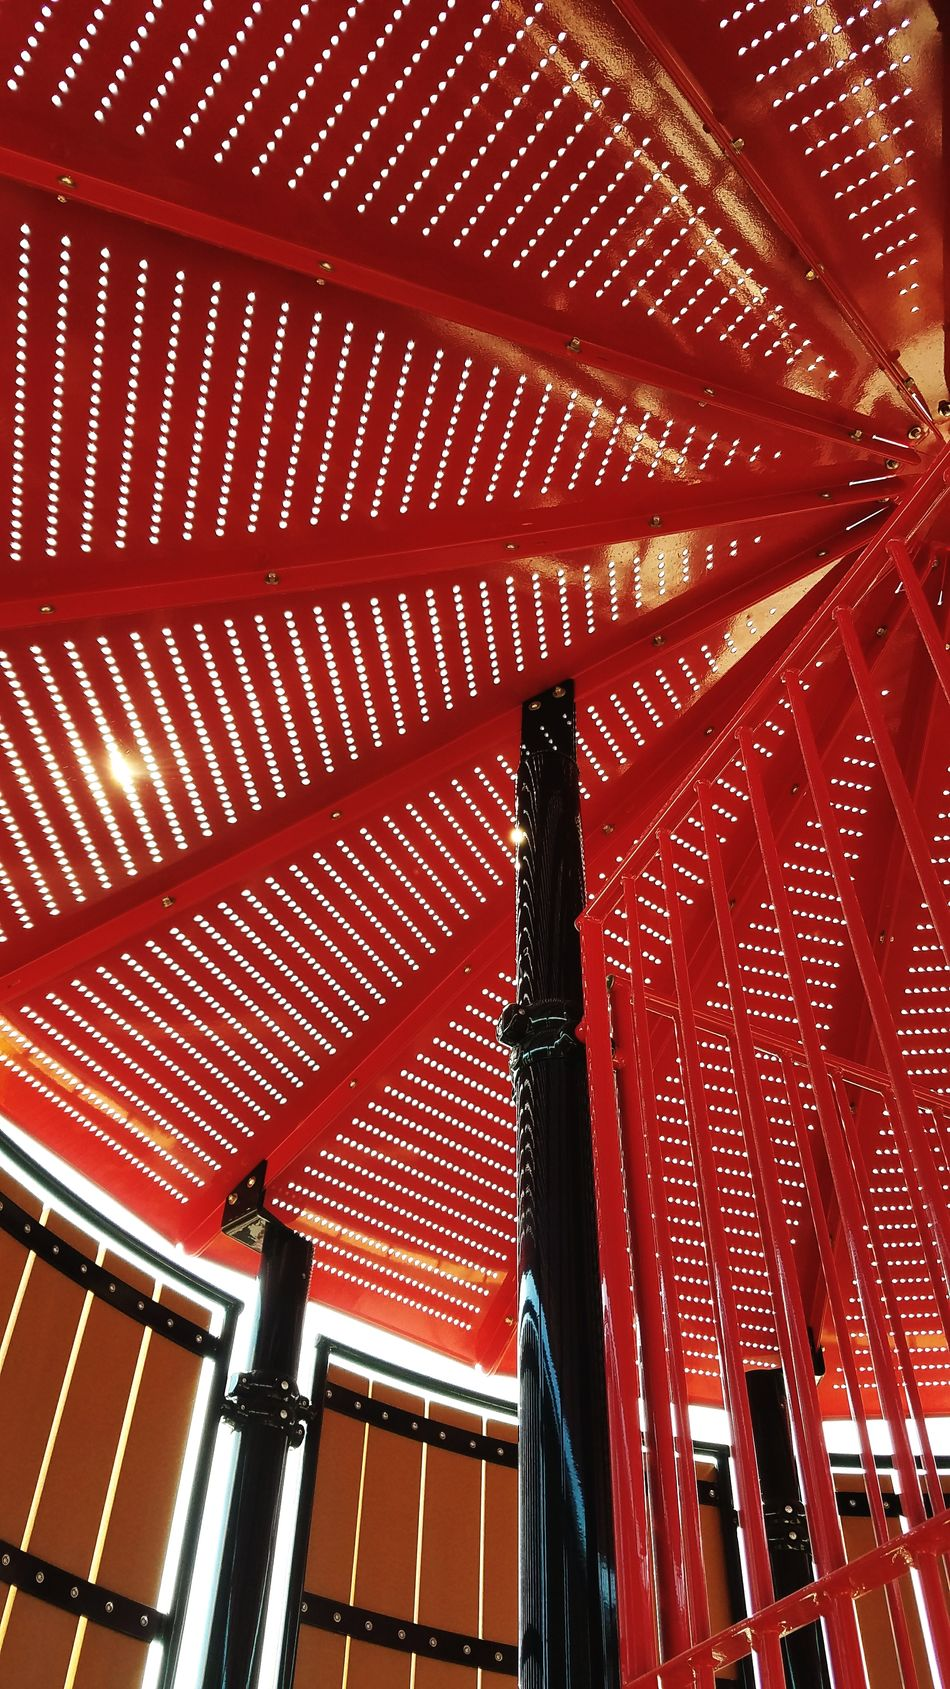 Inside looking up in a childrens playground. Low Angle View Built Structure Architecture Ceiling Pattern No People Indoors  Day Red Playground Playground Equipment ColorRed Metal Metallic Redmetal Park Sun Travel Destinations California Outdoors Popular EyeEm Best Shots Travel Photography EyeEmBestPics No Filter